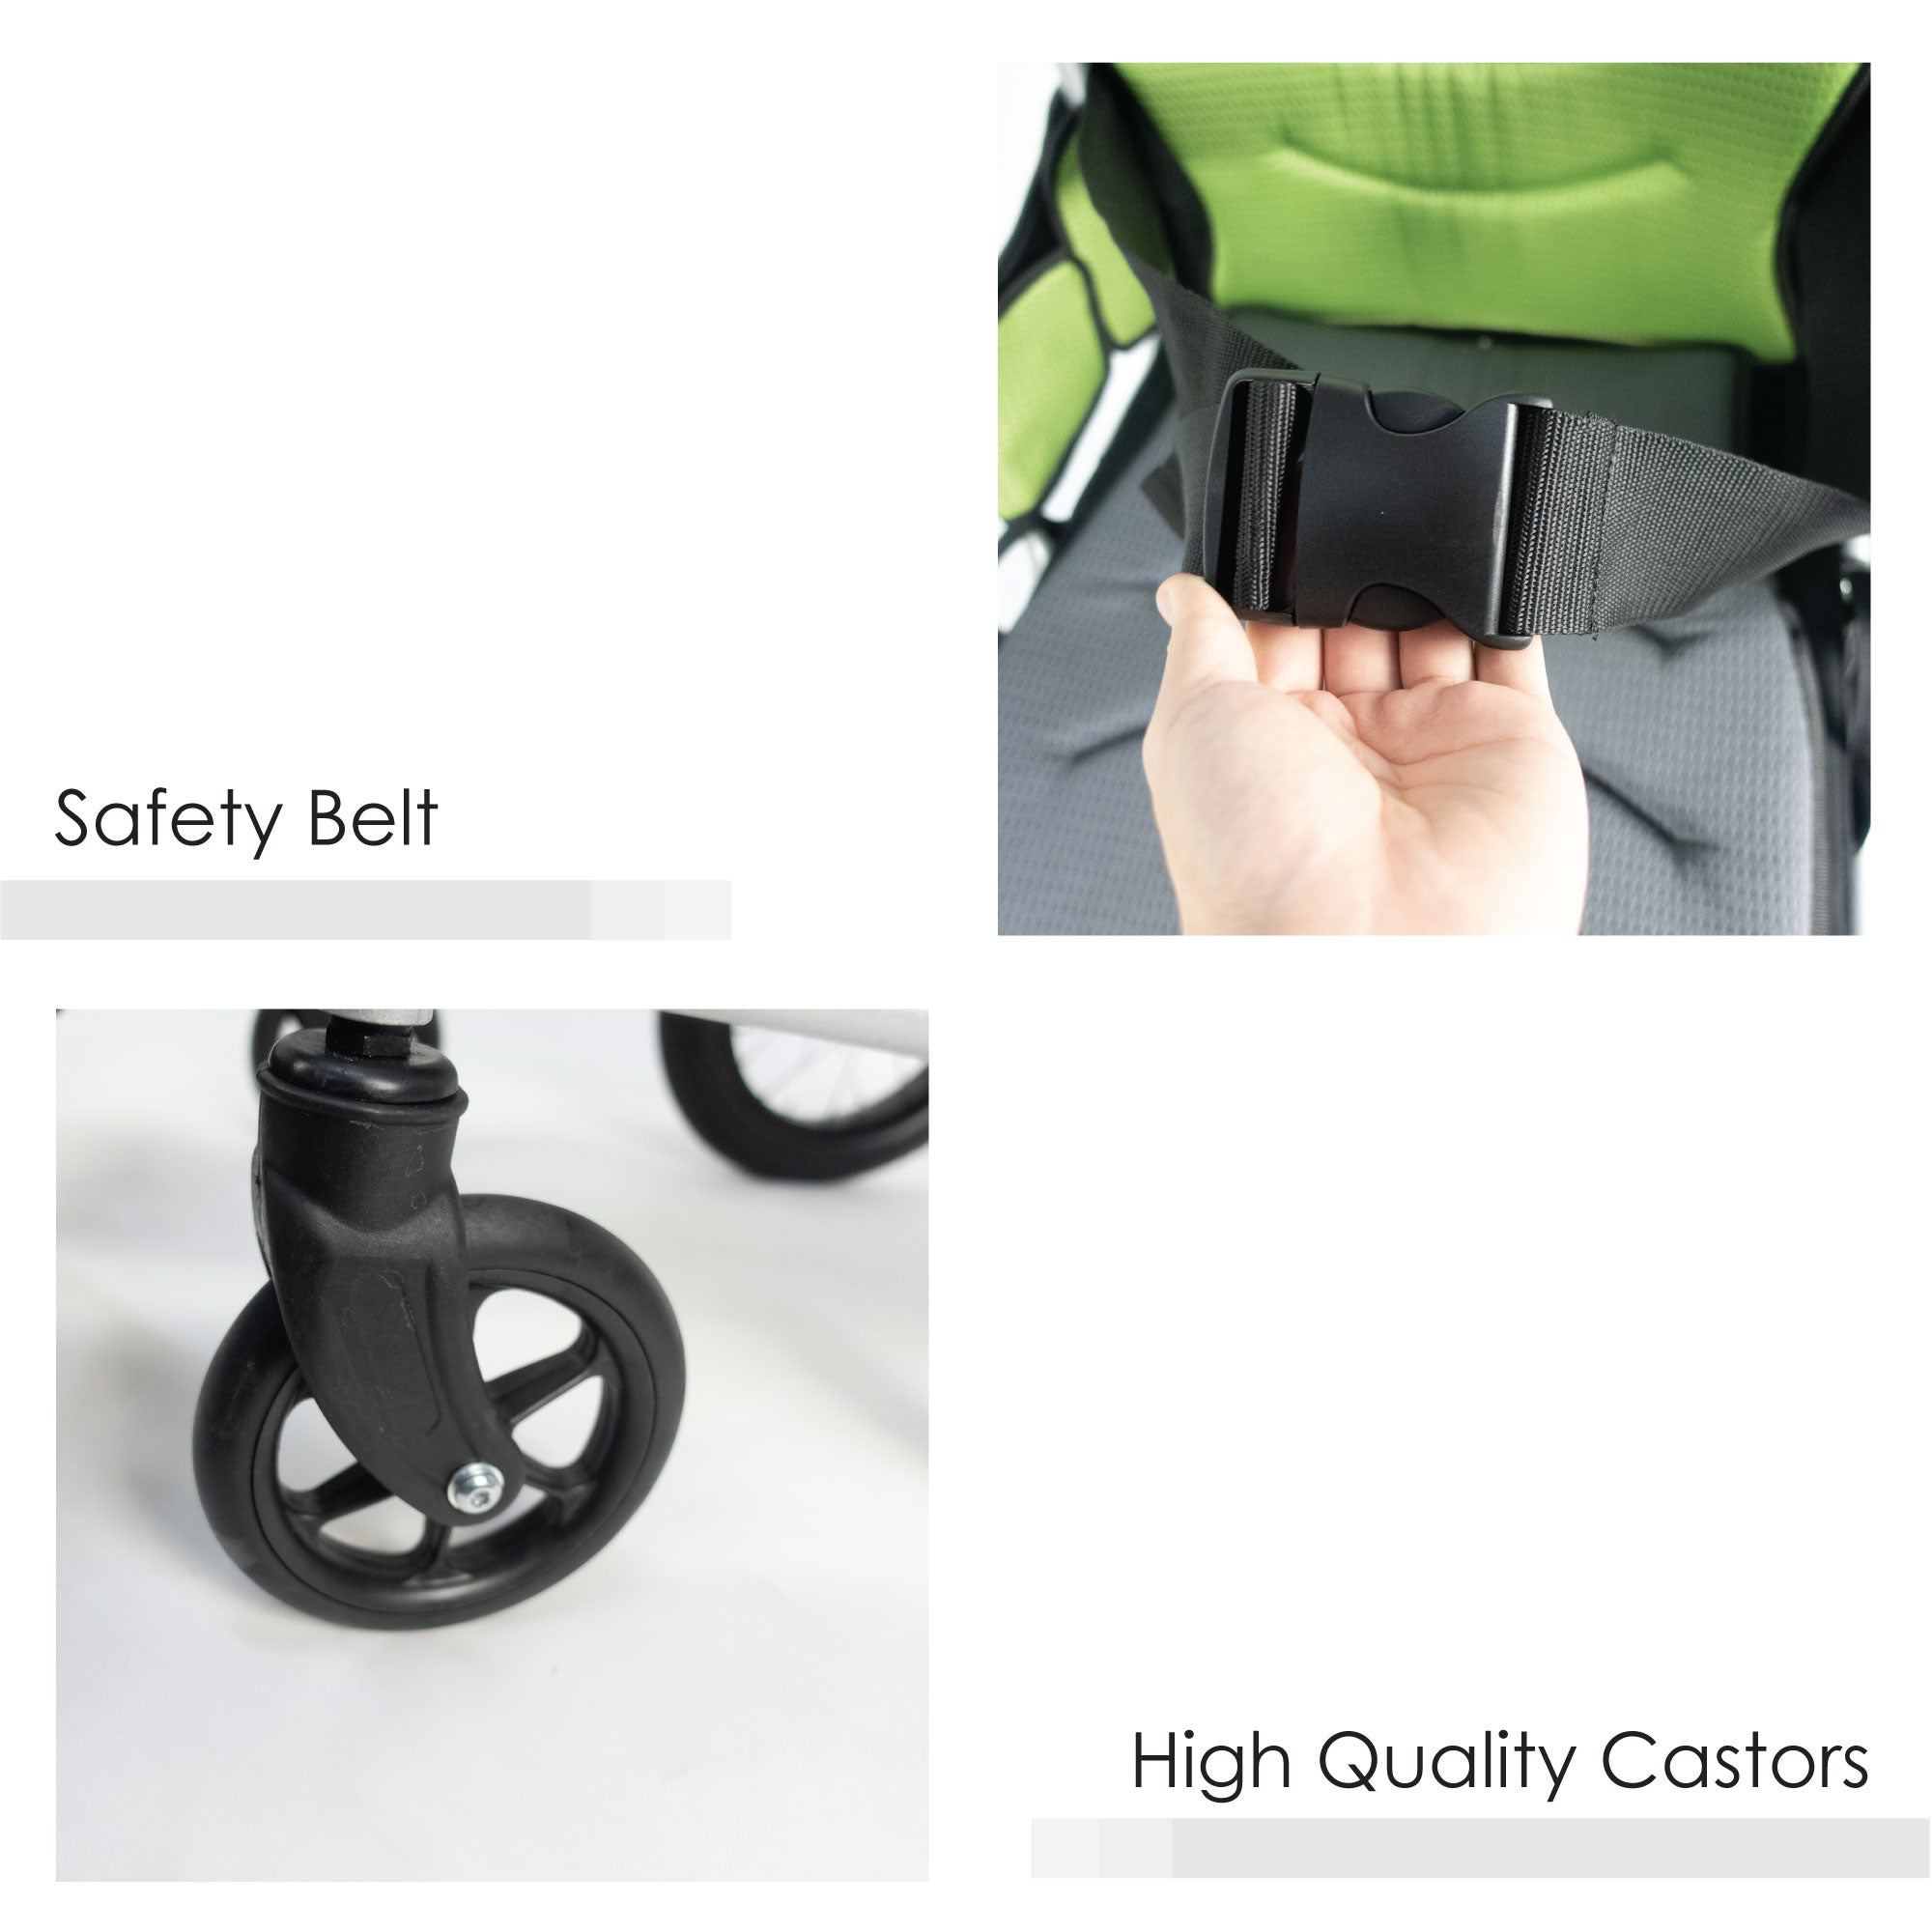 Safety Belt & High Quality Castors